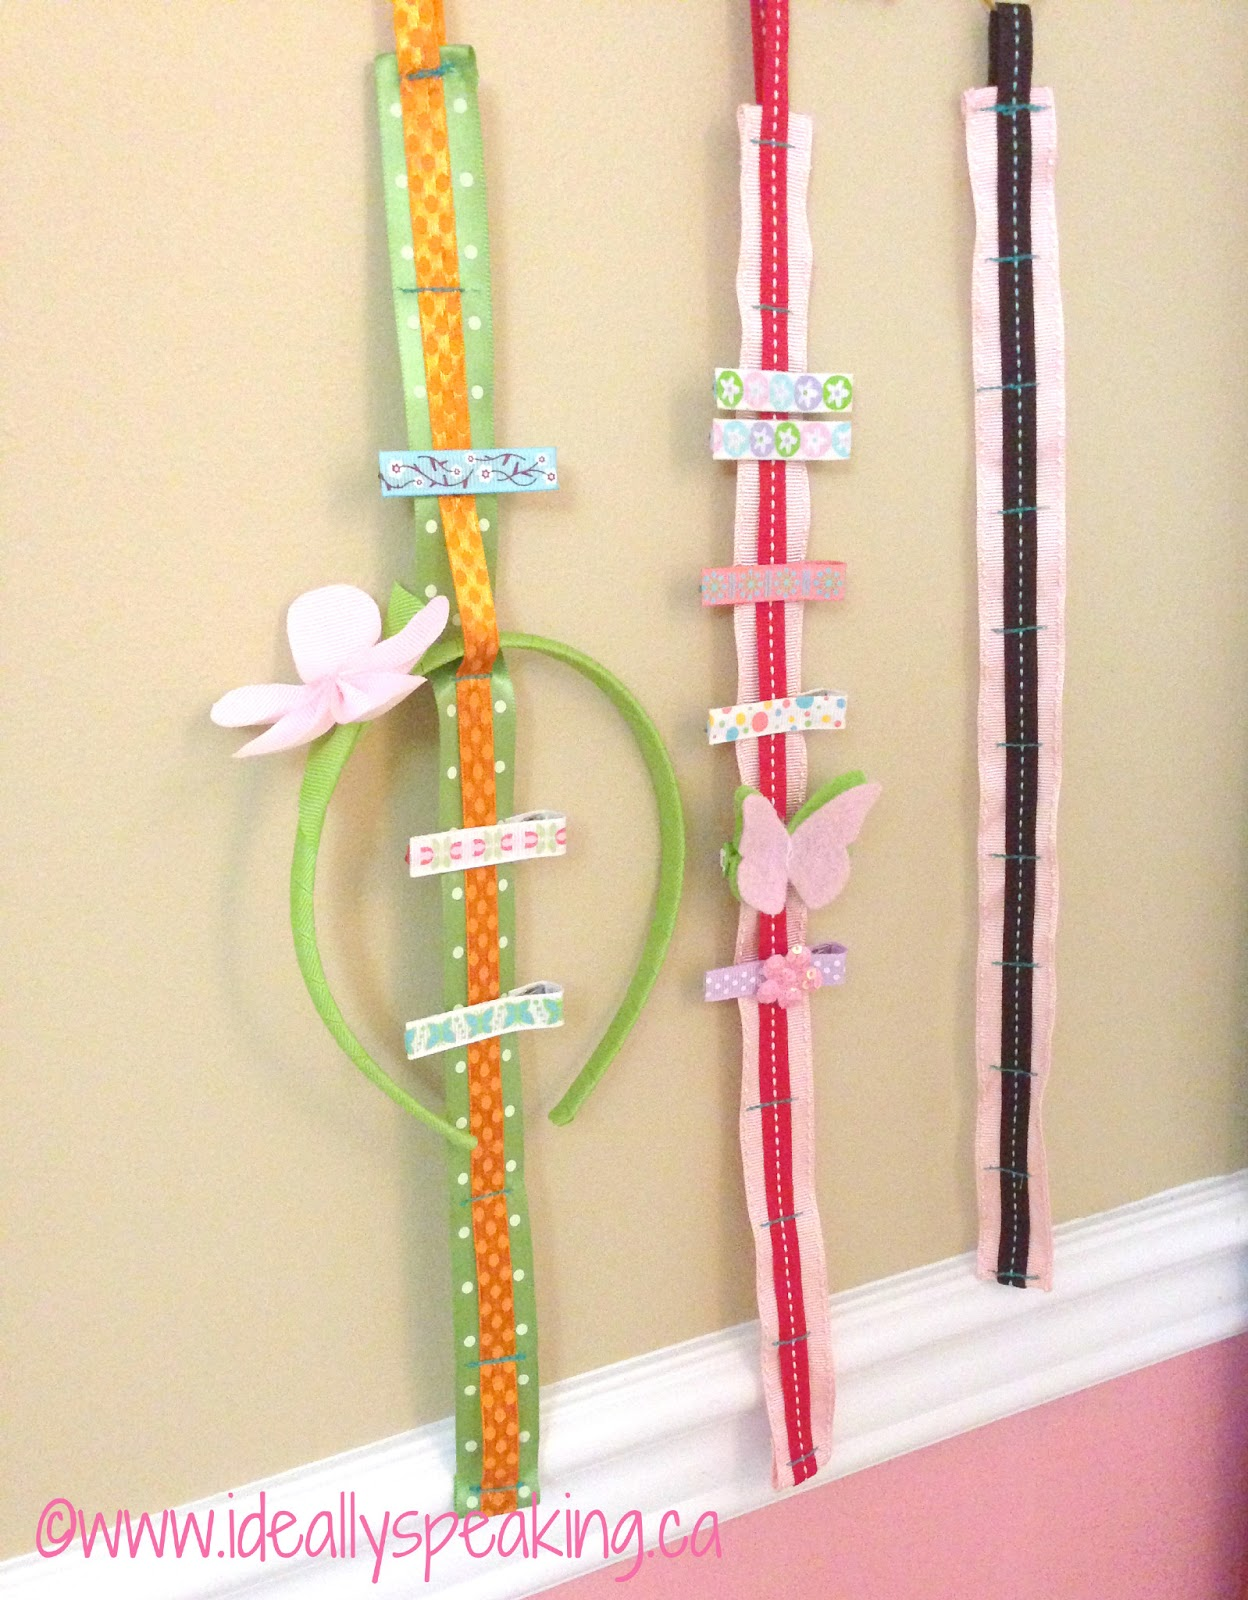 Adorable DIY ribbon hangers to organize your little girl's hair accessories. Put the cute stuff on display!